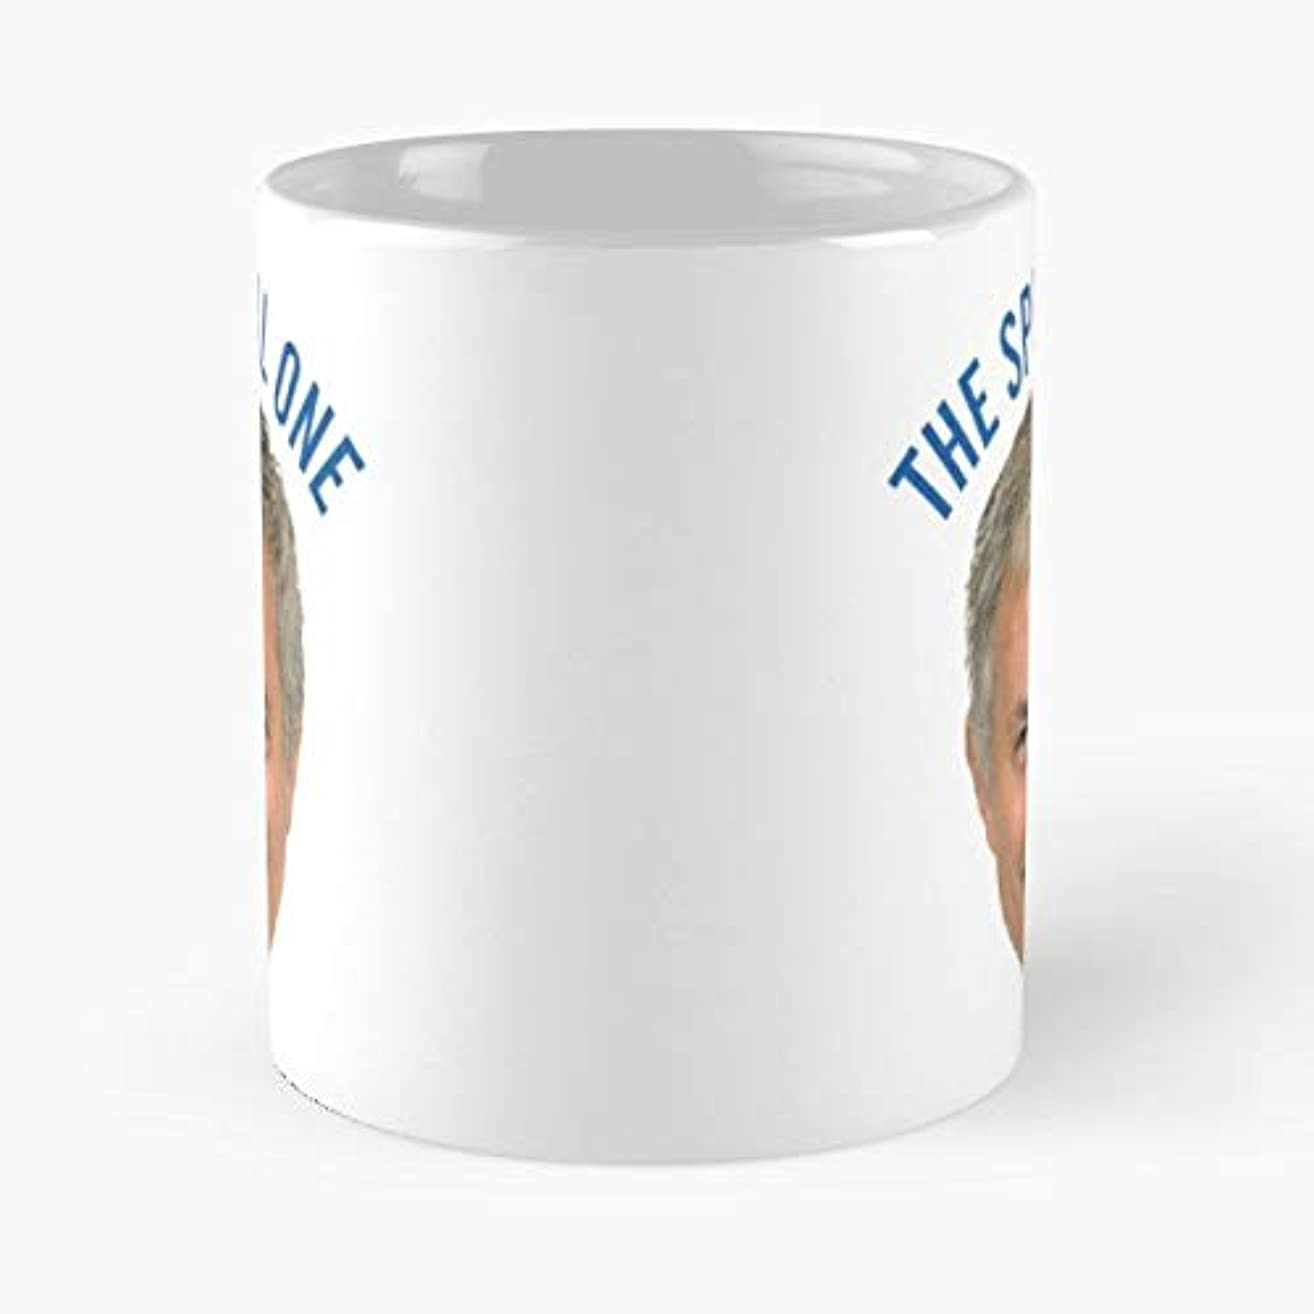 Special One Jose Mourinho London - Coffee Mugs Unique Ceramic Novelty Cup Best Gift